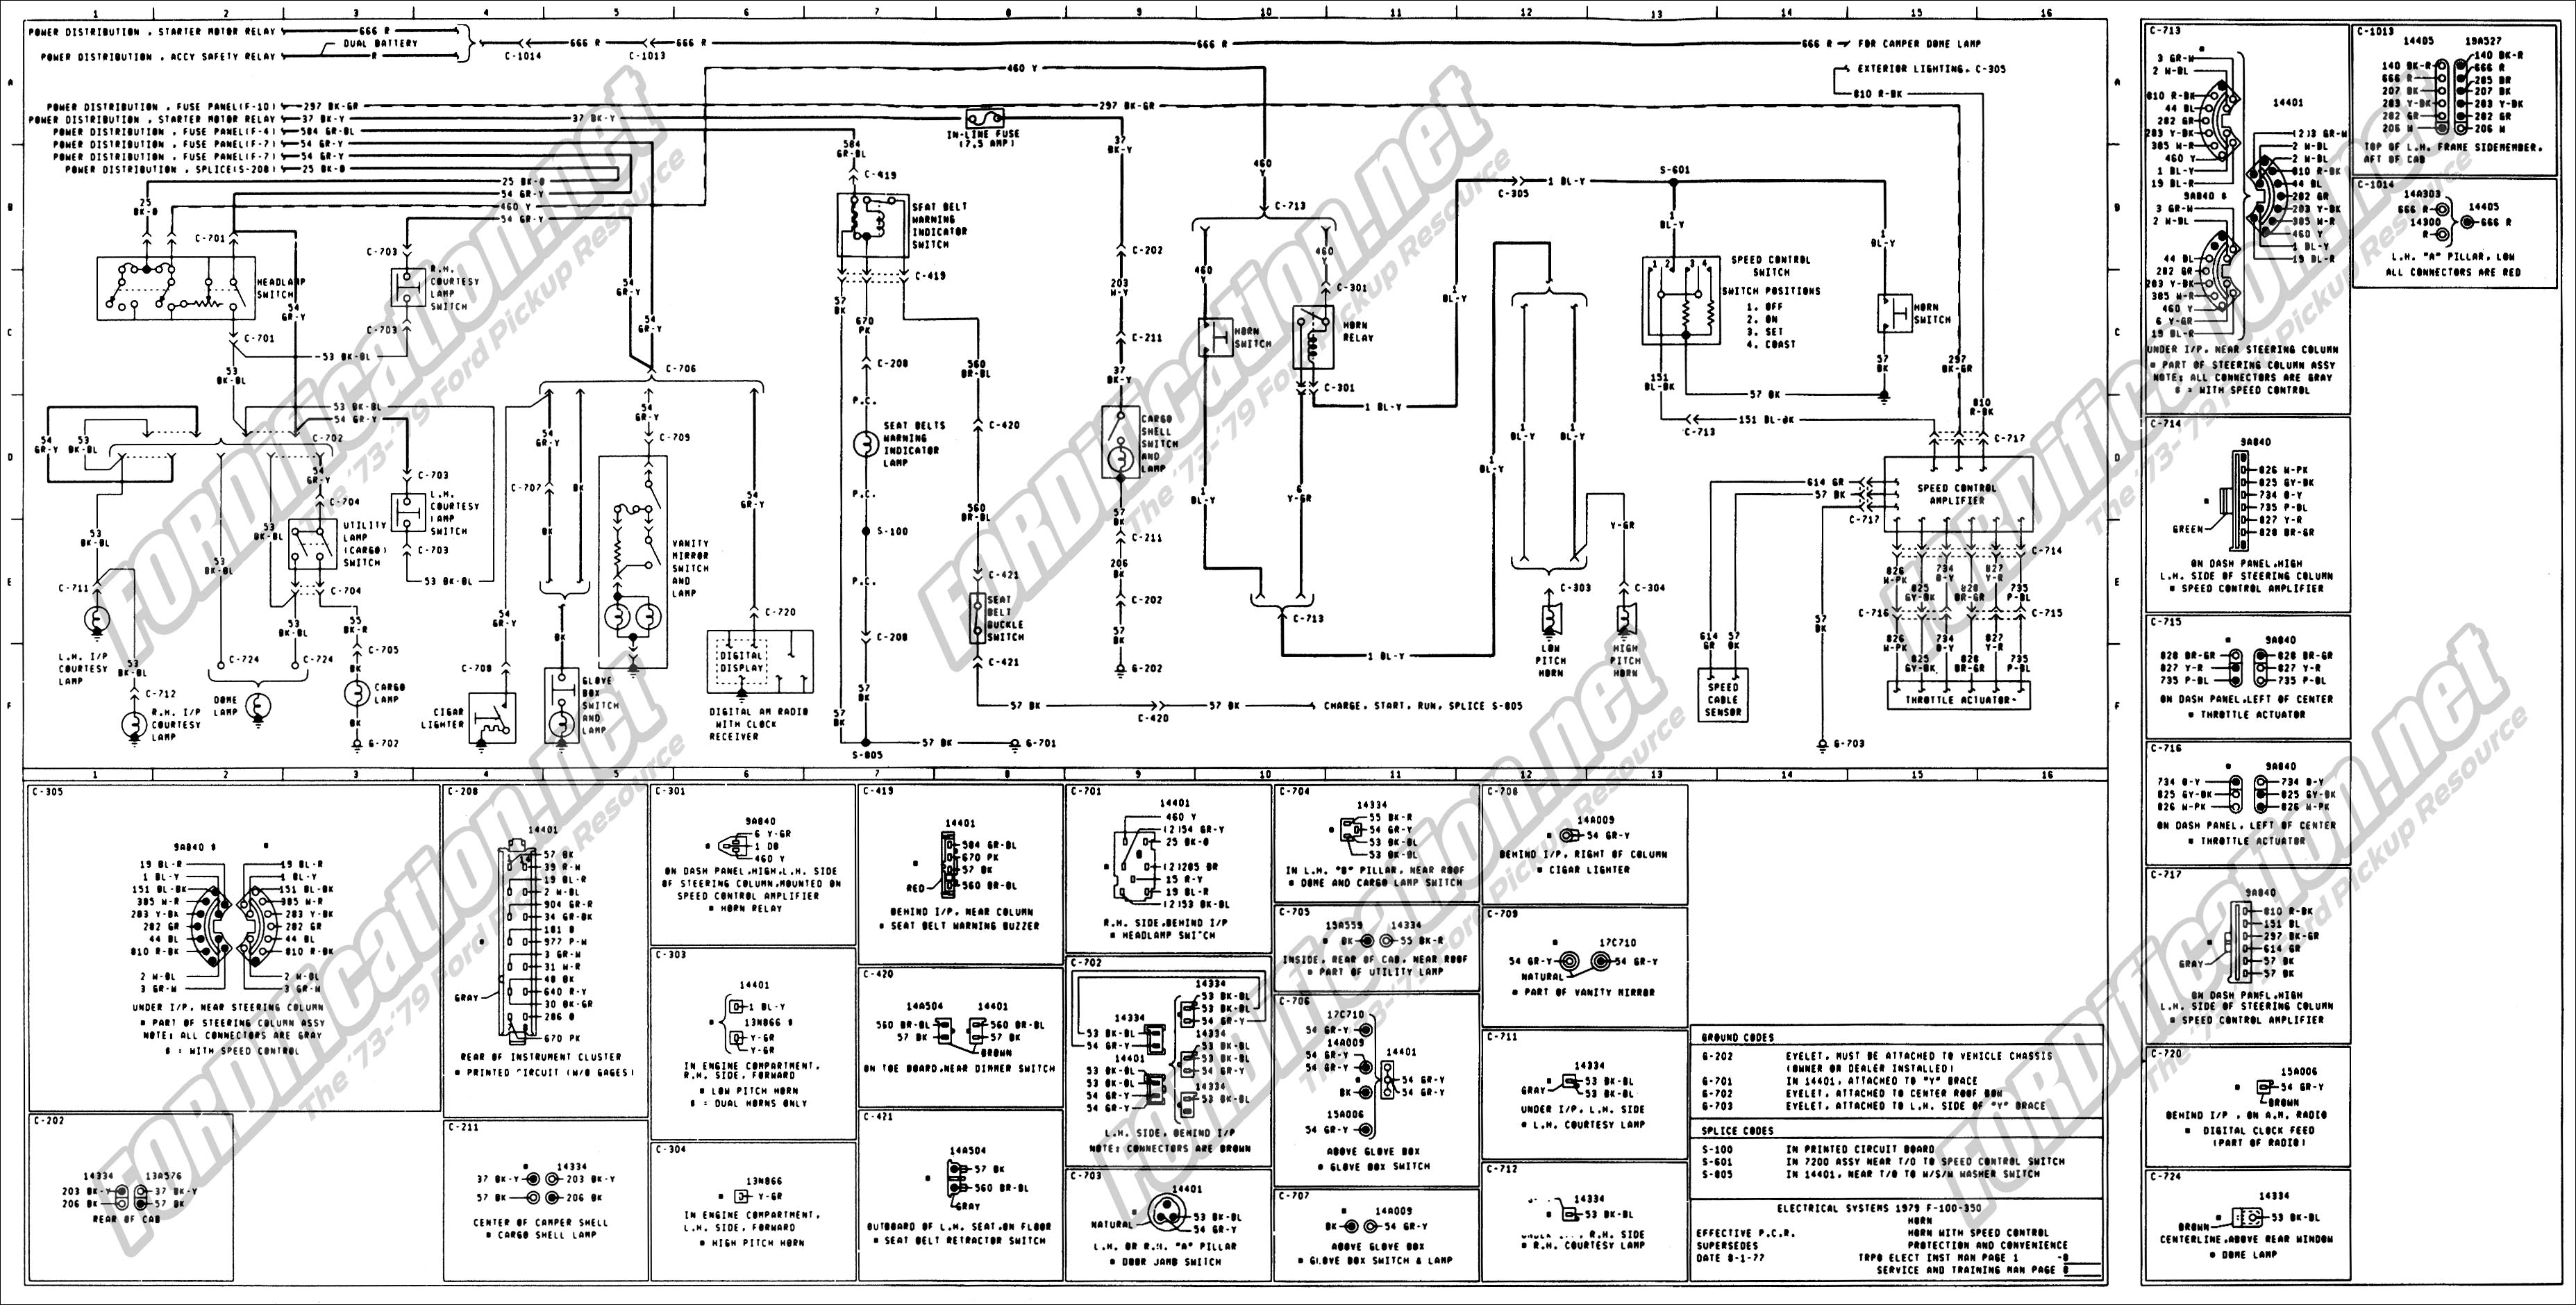 E150 Wiring Ground Locations Diagram Wire Electrical On For Electric Fence 1973 1979 Ford Truck Diagrams Schematics Fordification Net Rh 6 Volt Positive Connection